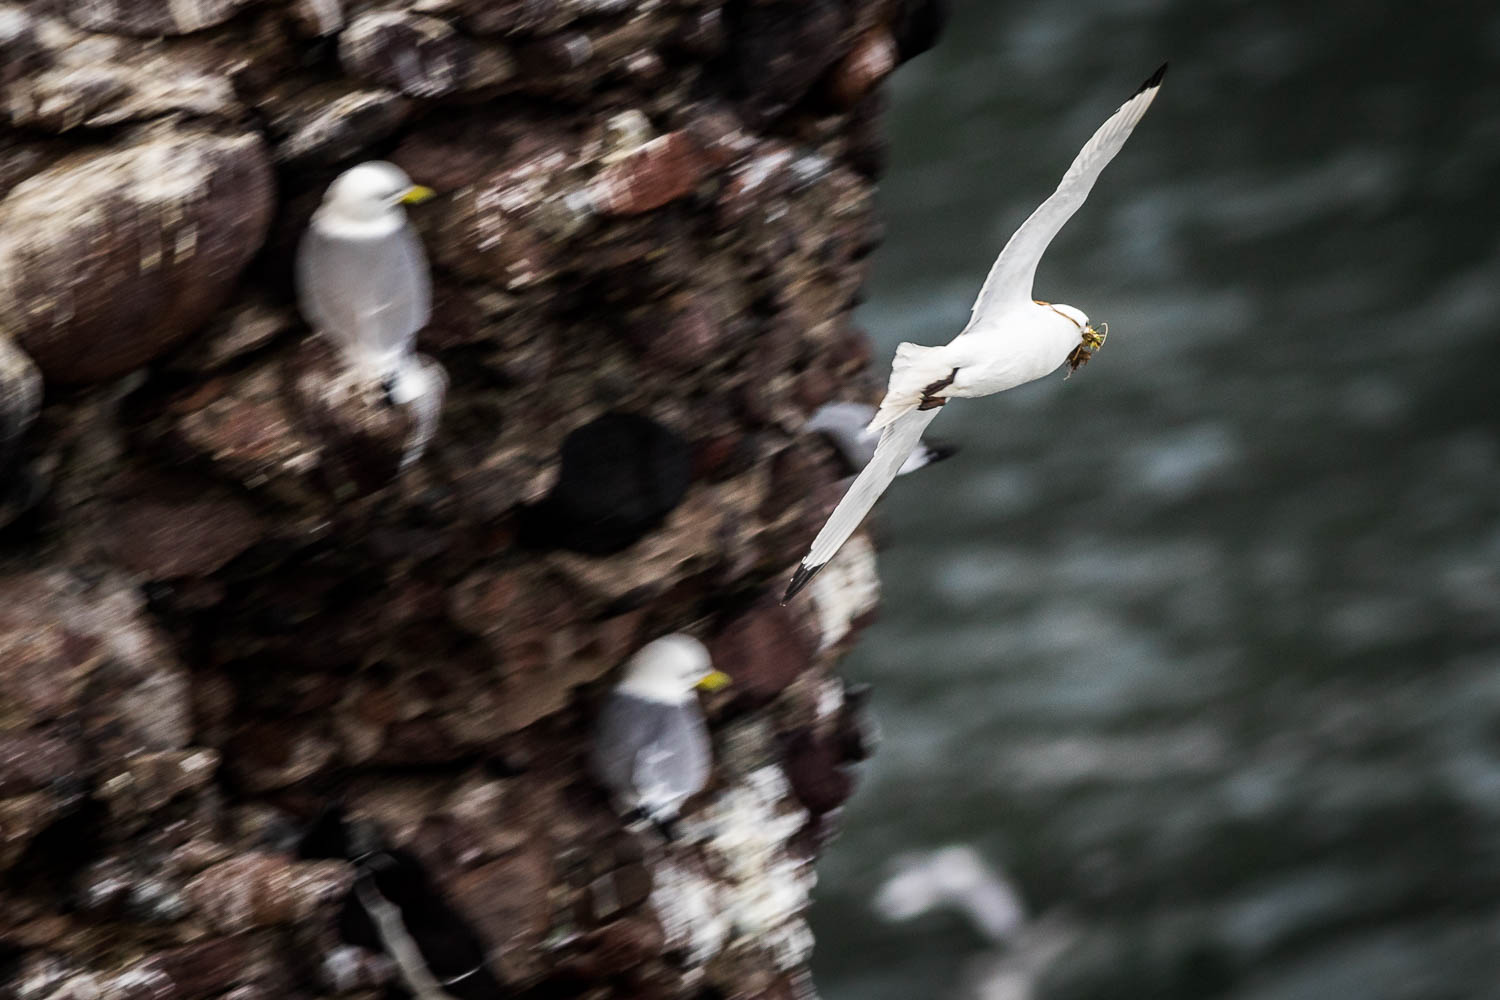 A Kittiwake returning to its nest with a bill full of nesting material.